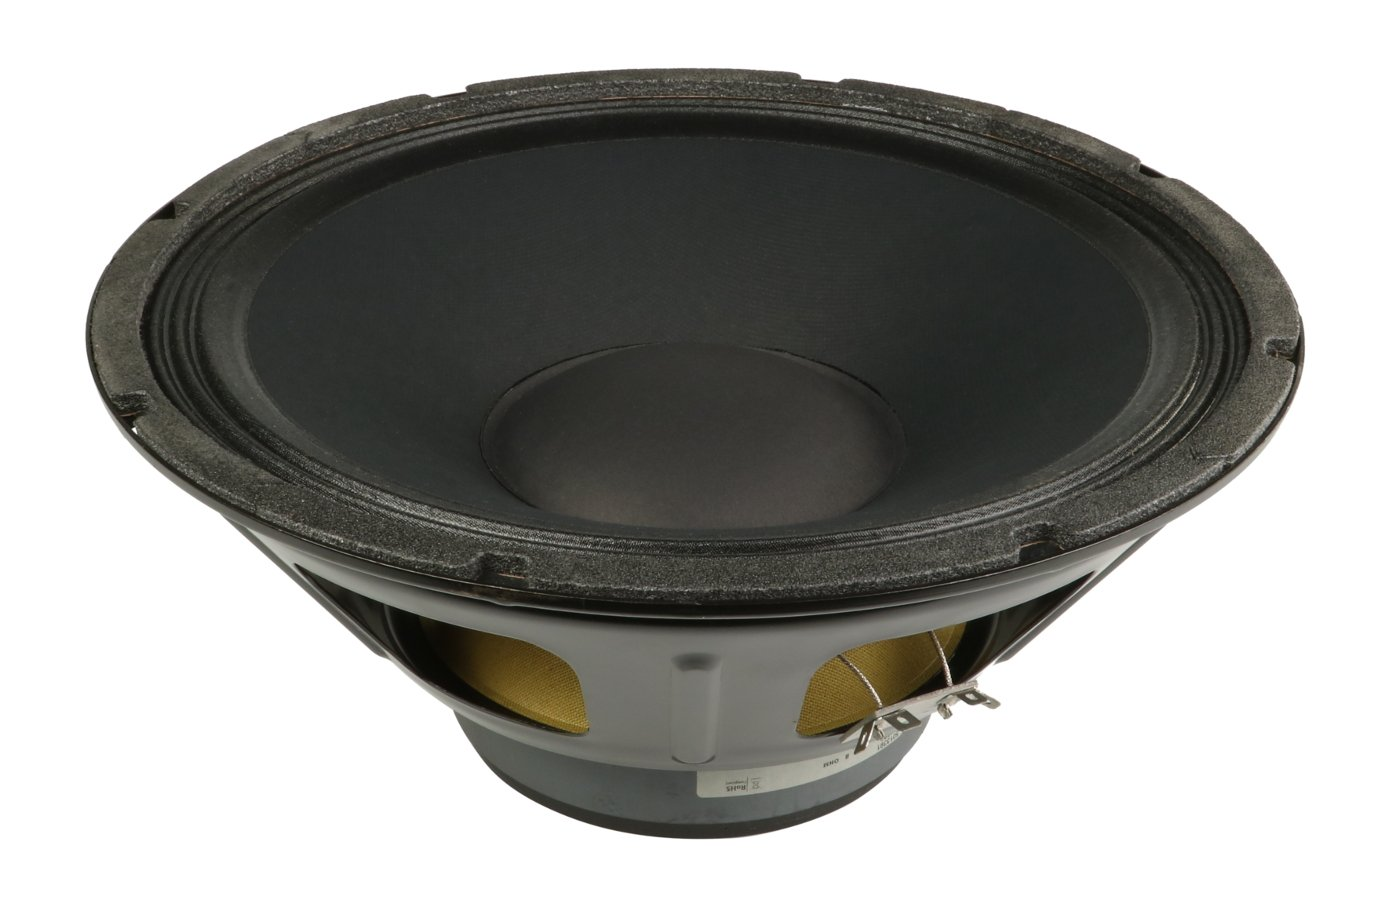 Woofer for PRX412